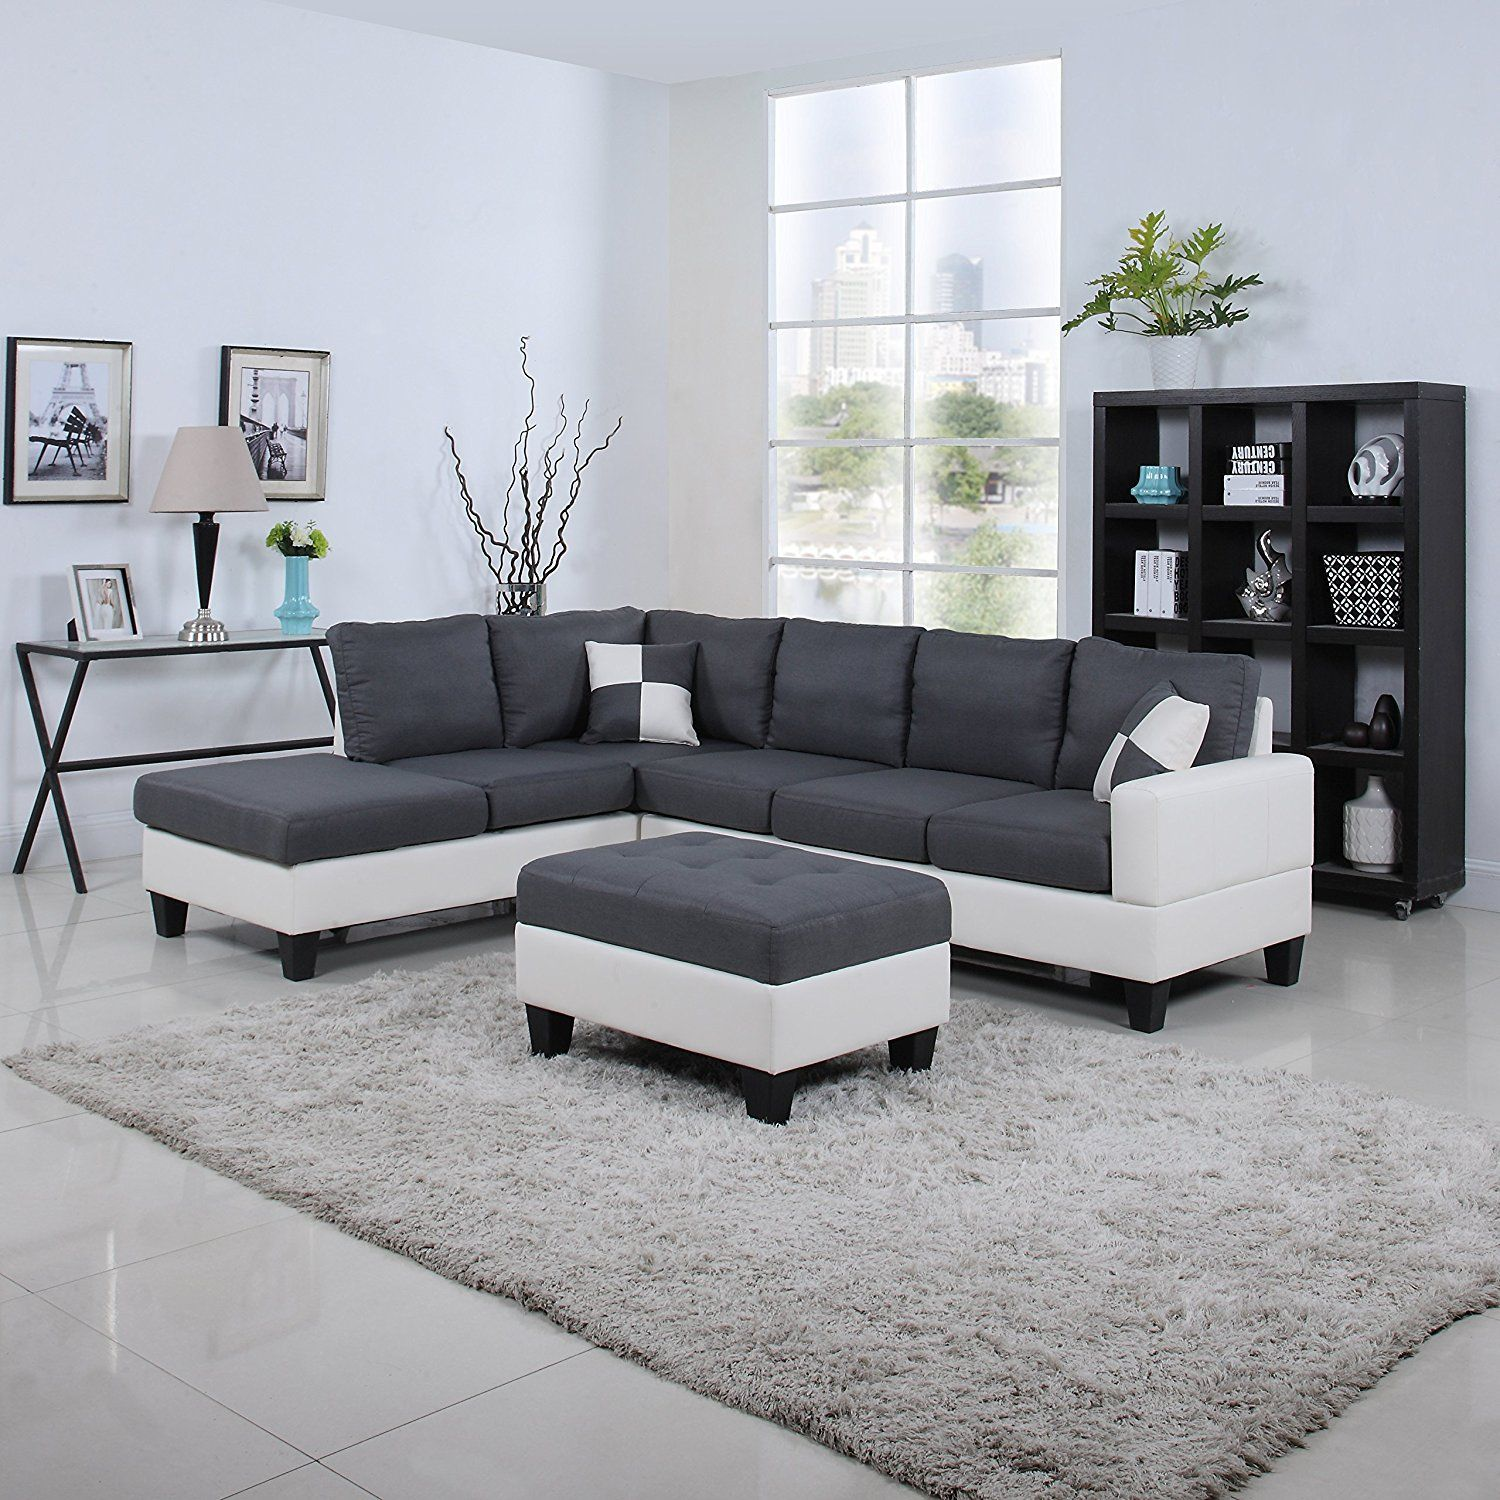 Best Cheap Sectional Couches For Sale Top Sectional Couches 400 x 300